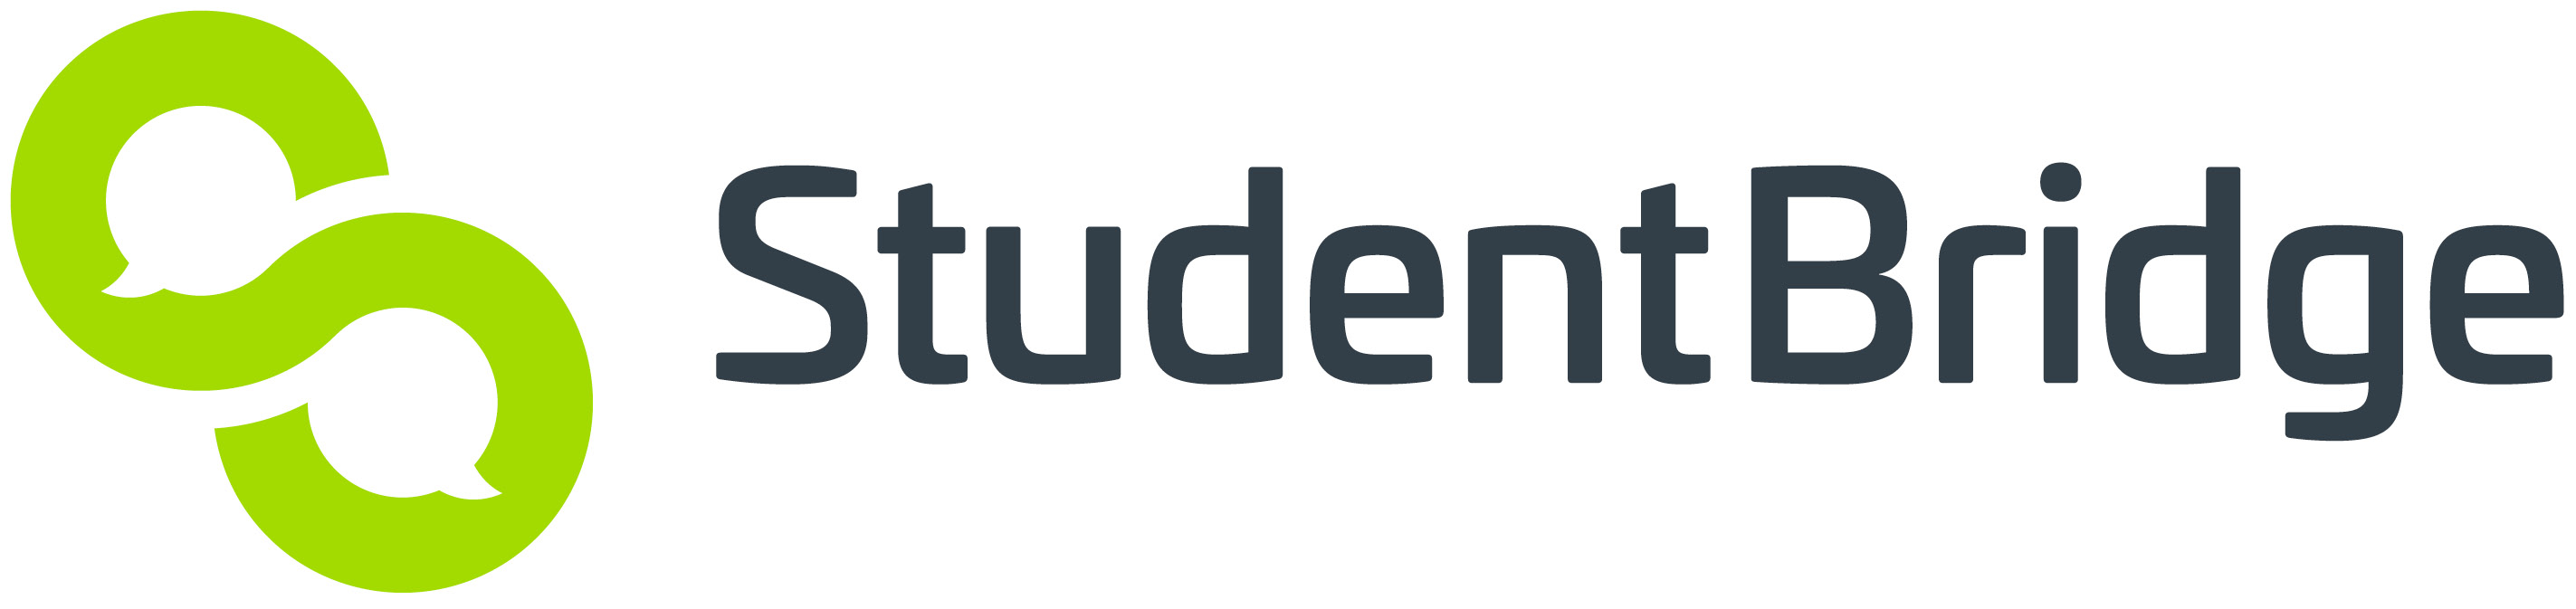 StudentBridge - Recruiting